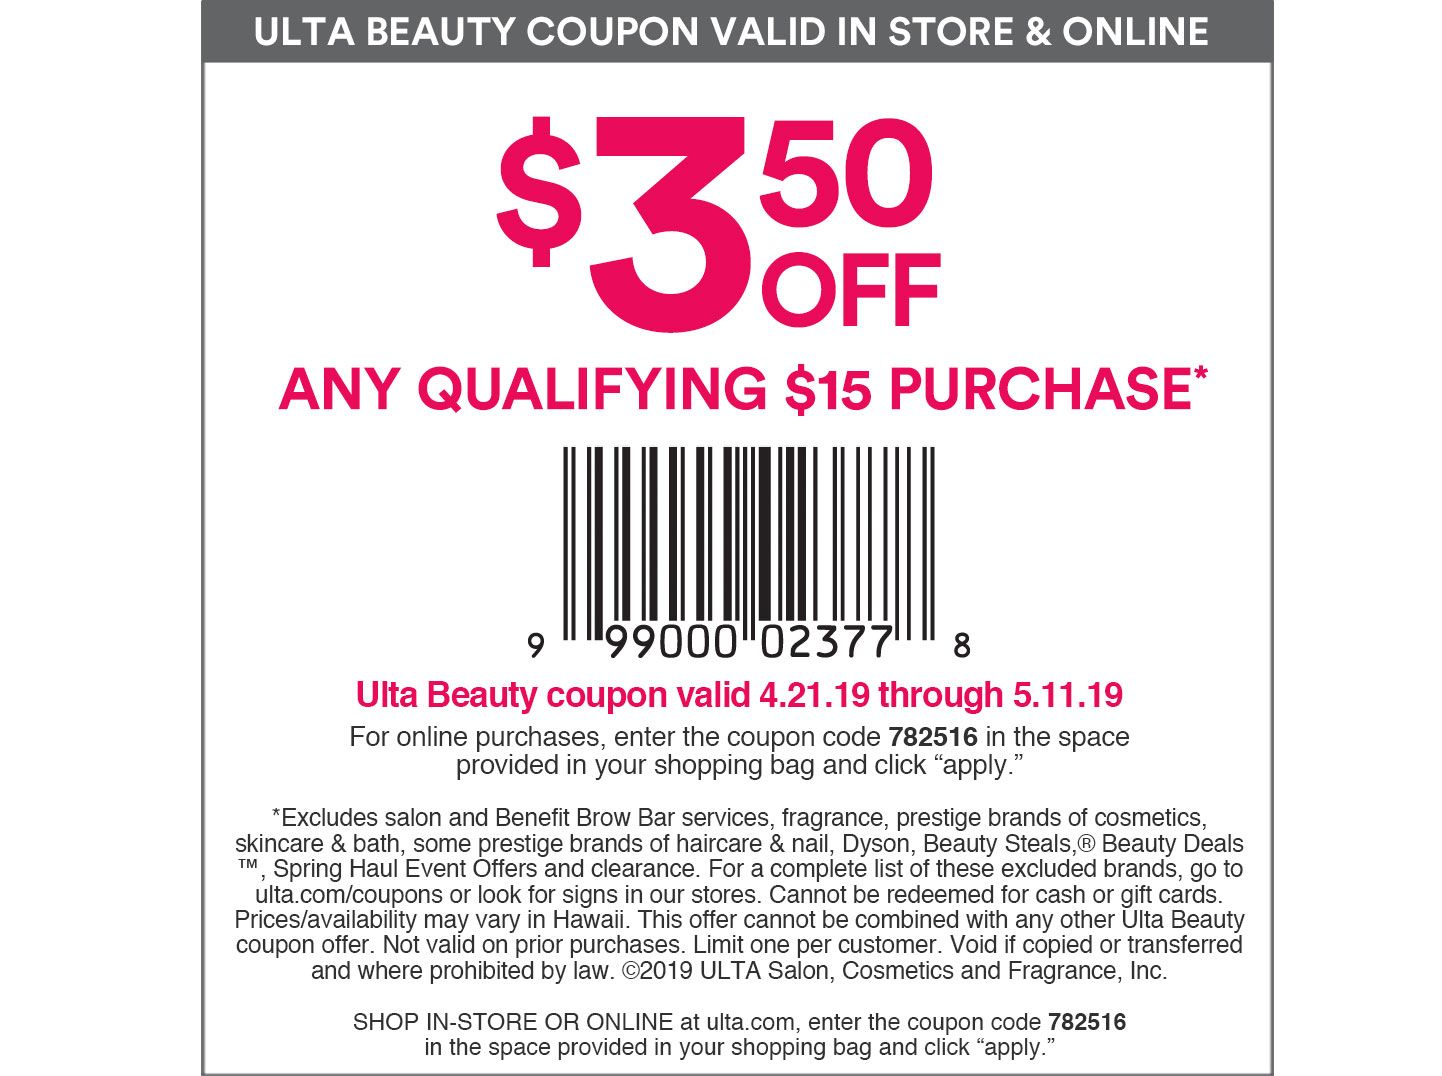 3 50 Off Your 15 Purchase Coupon Ulta Beauty Ulta Beauty Coupons Ulta Beauty